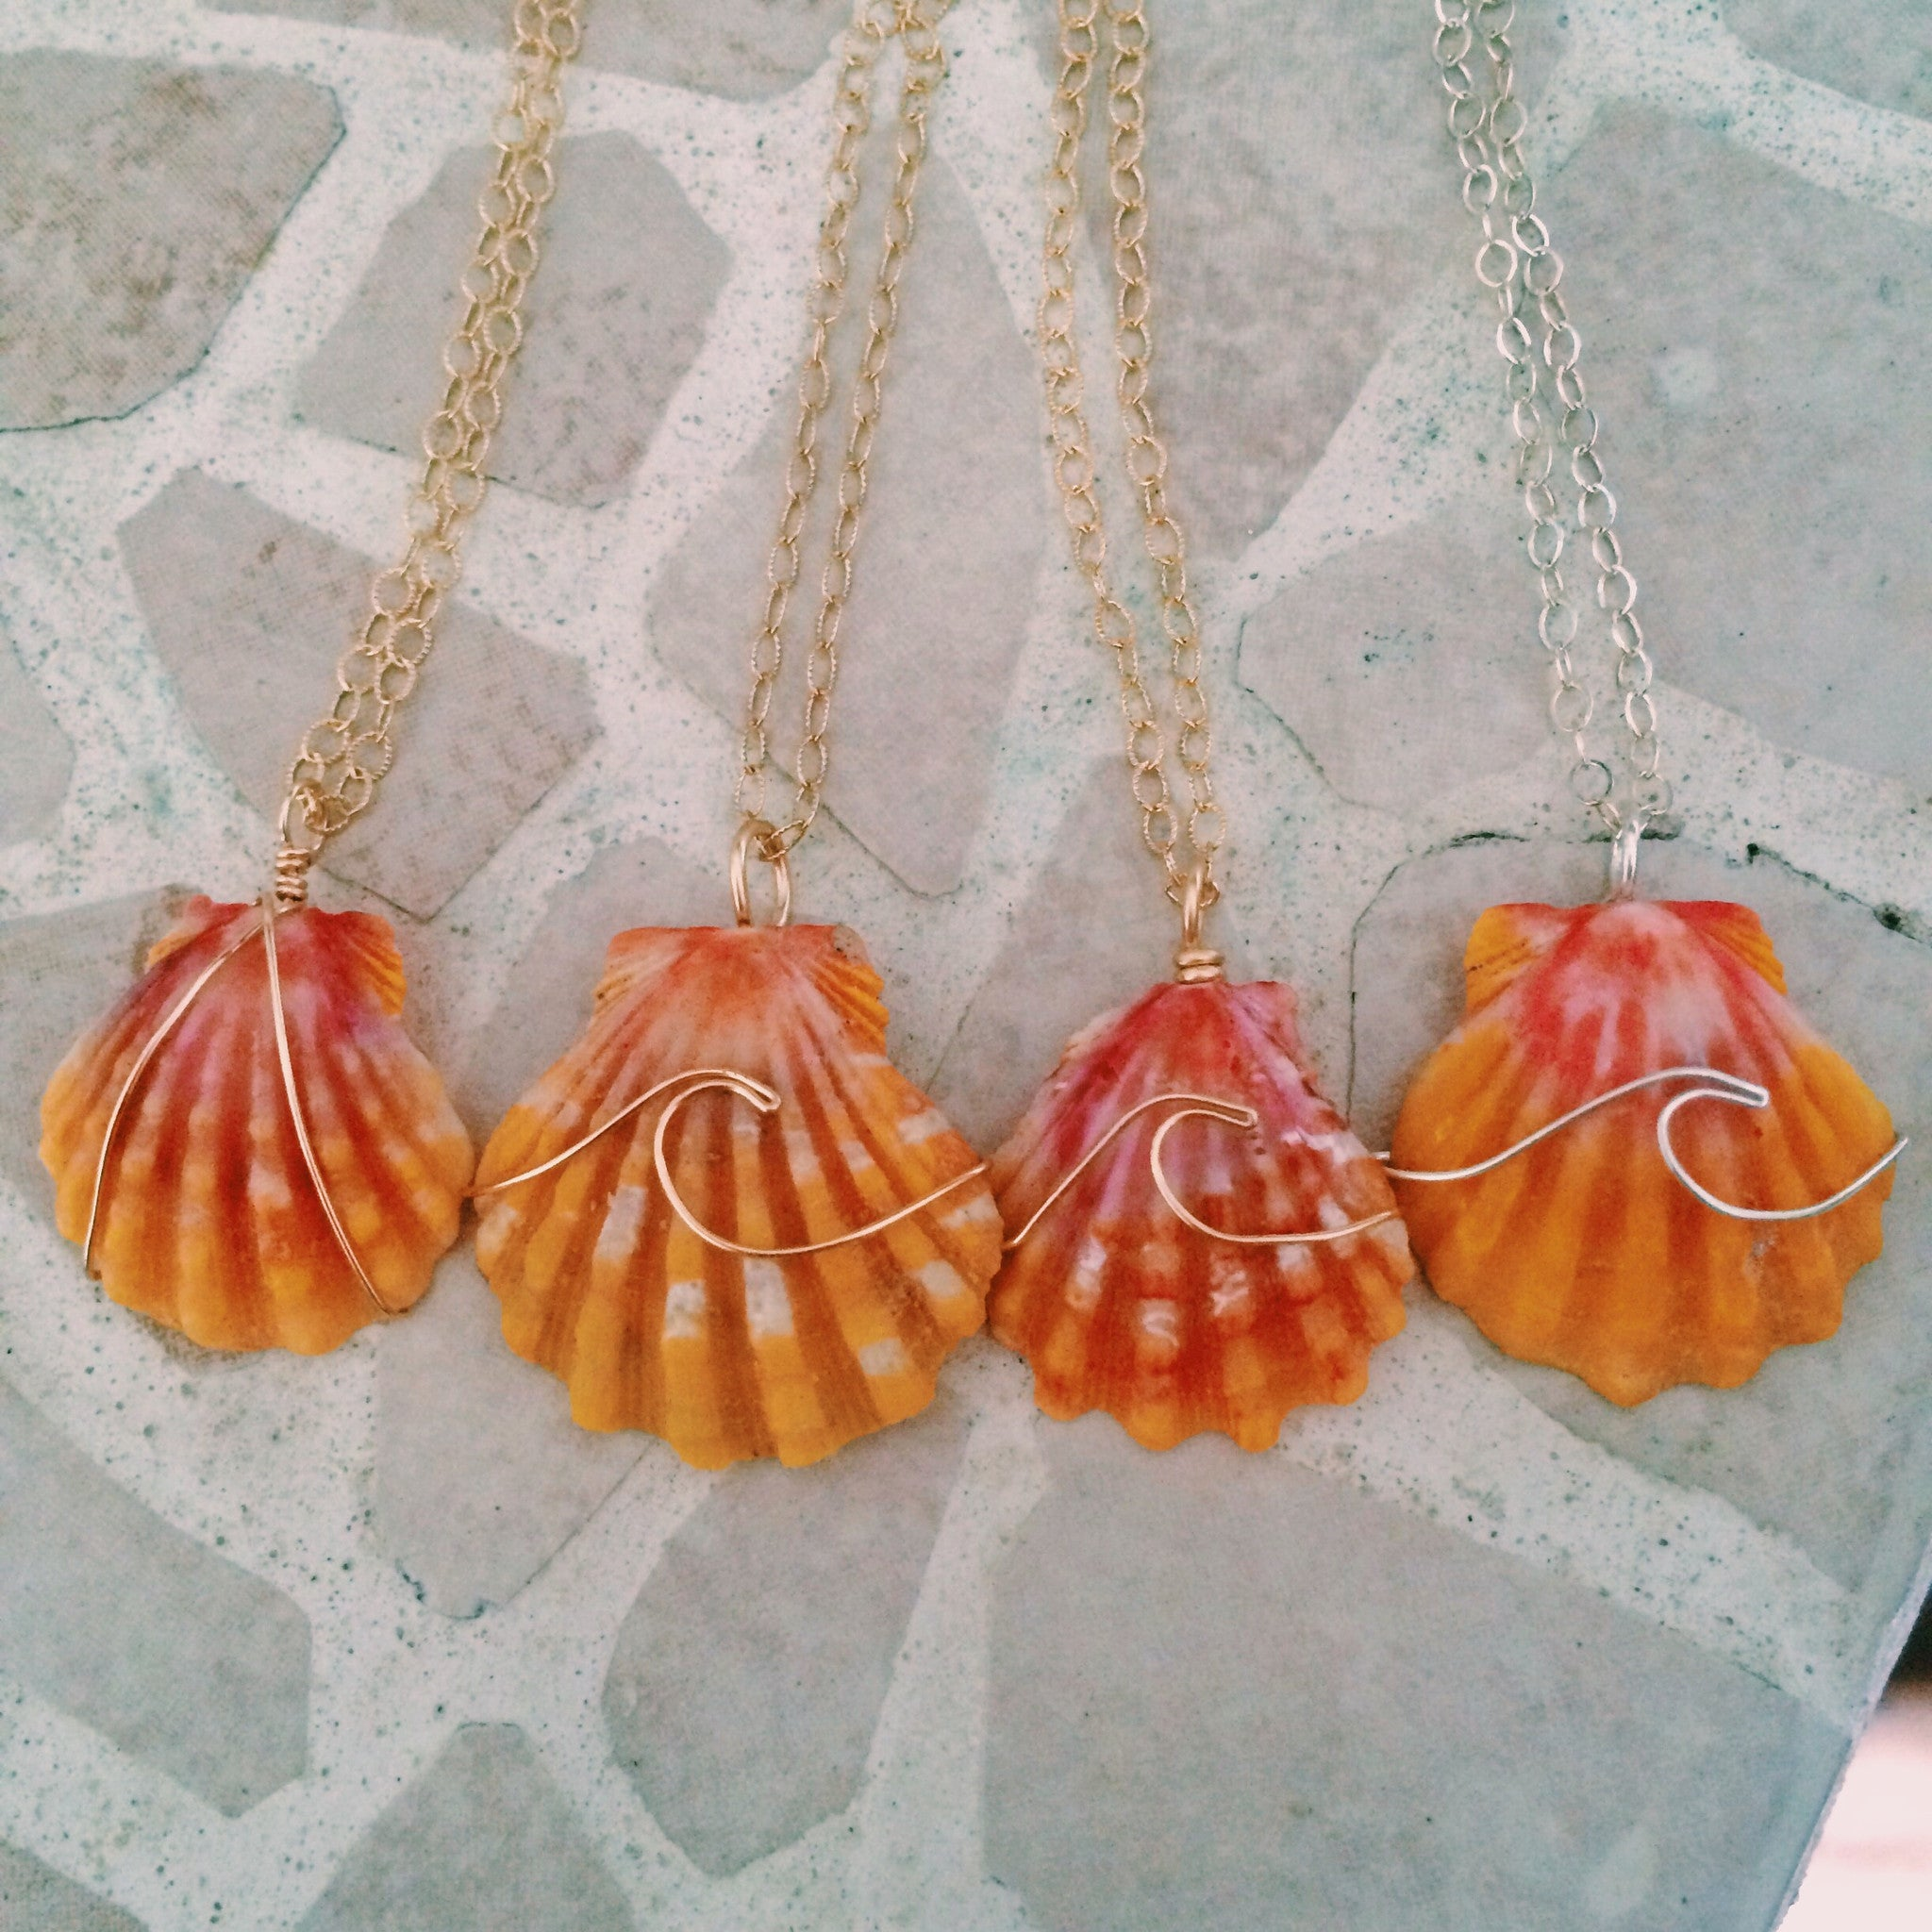 Swell Sunrise Necklace